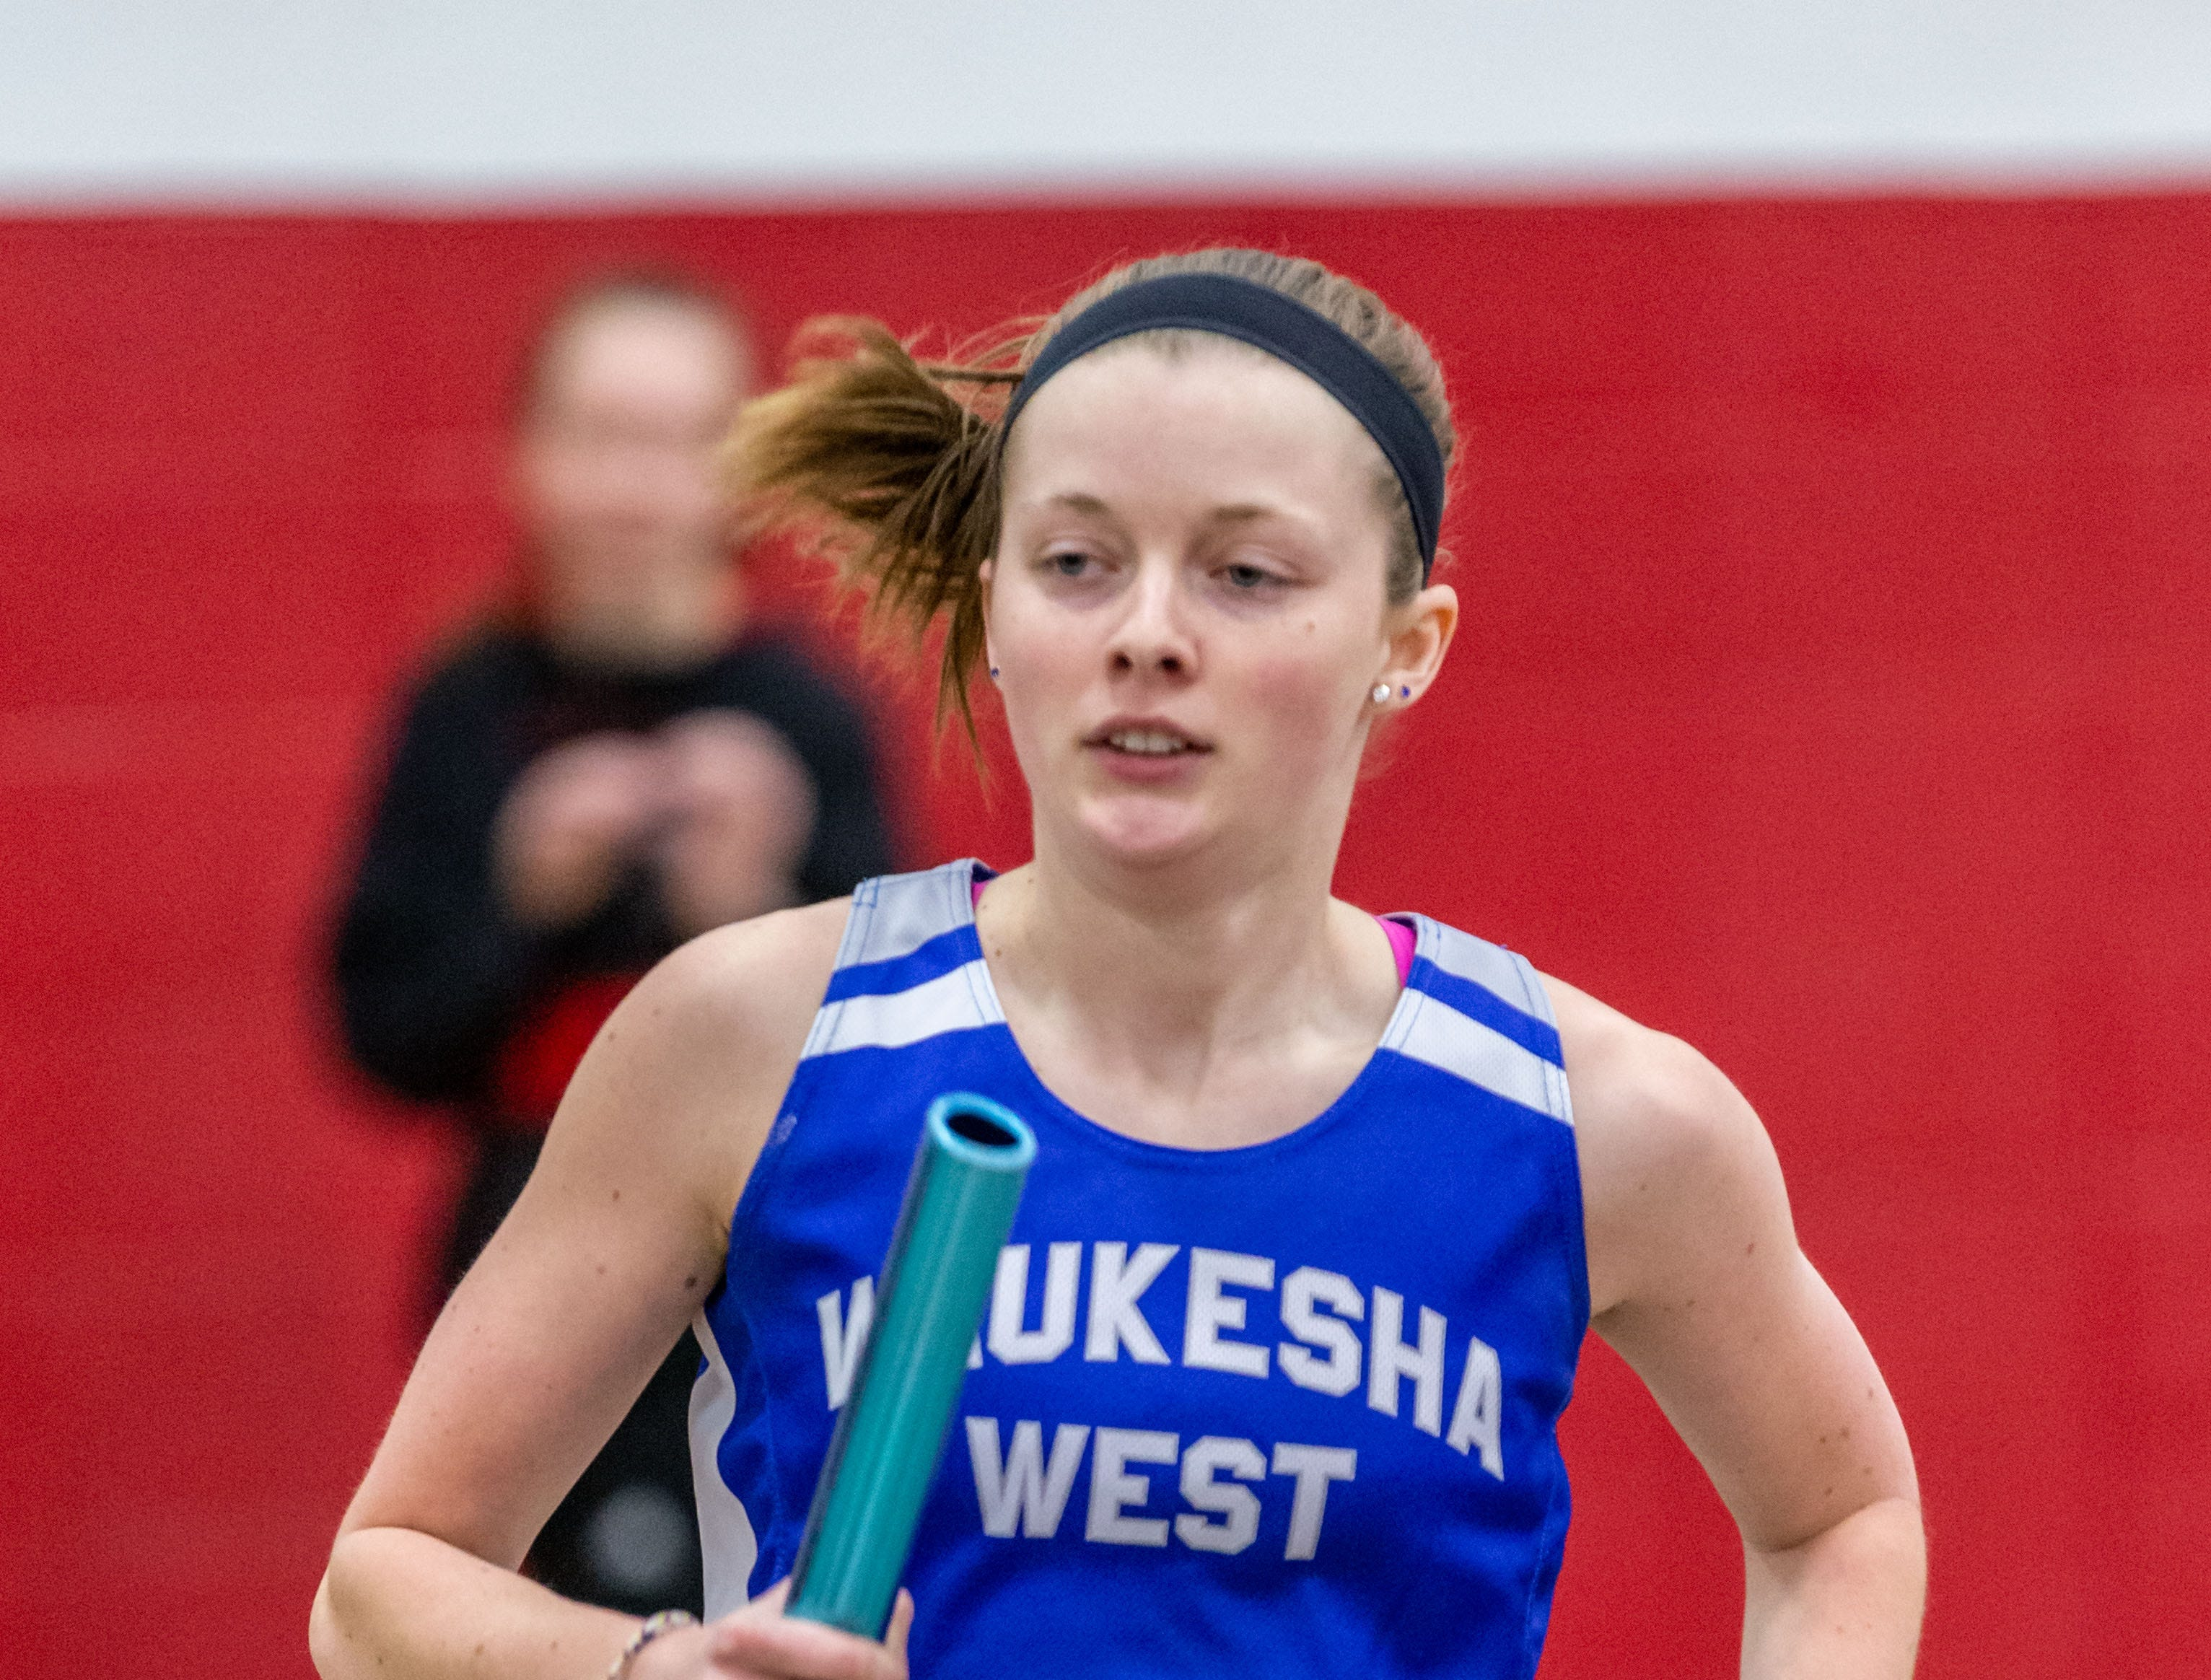 Waukesha West's Allyssa Reeves competes in the distance medley at the Peter Rempe Cardinal Relays hosted by Waukesha South on Thursday, March 21, 2019.